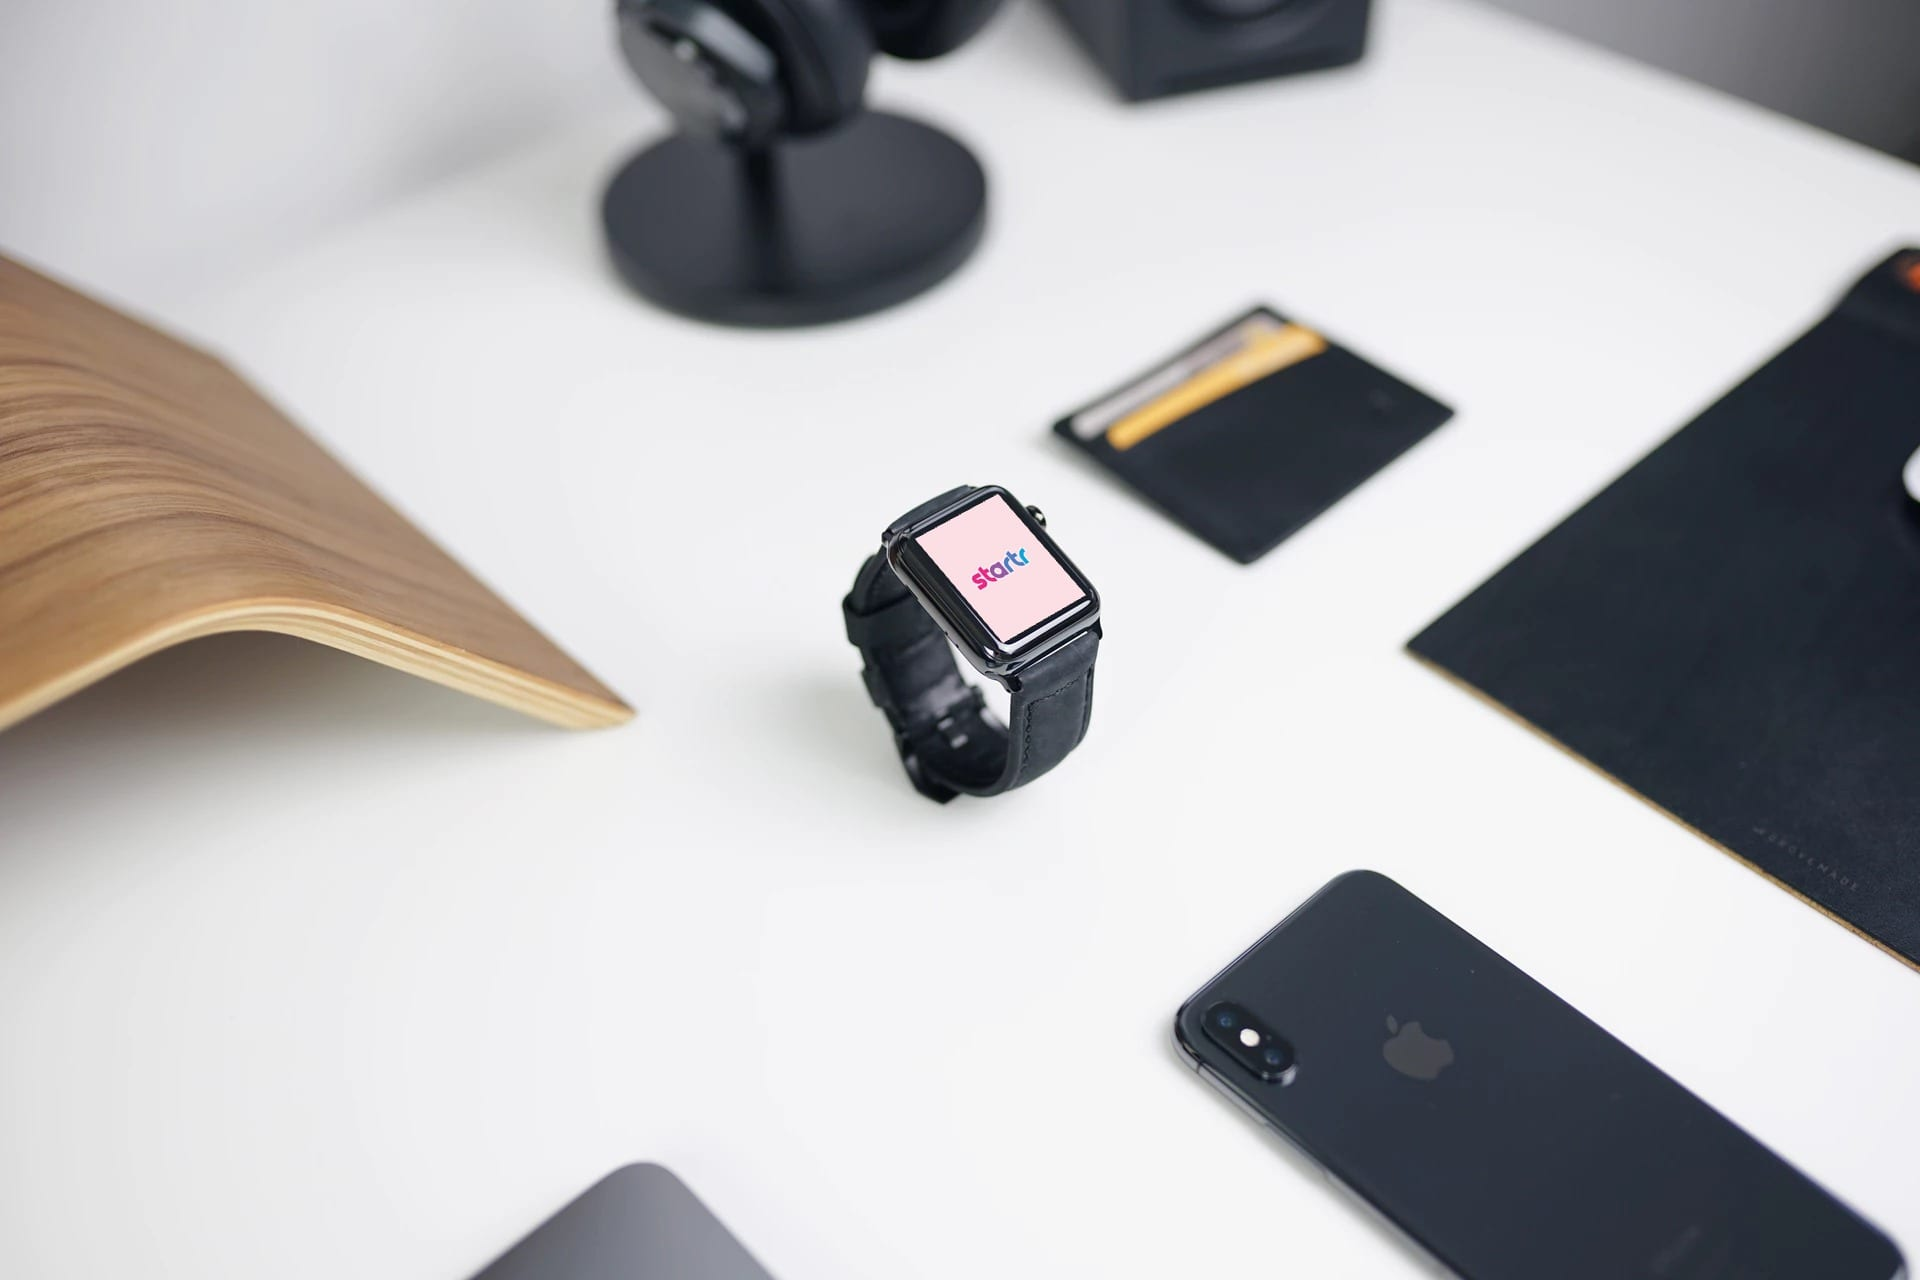 The best Apple Watch apps for business owners